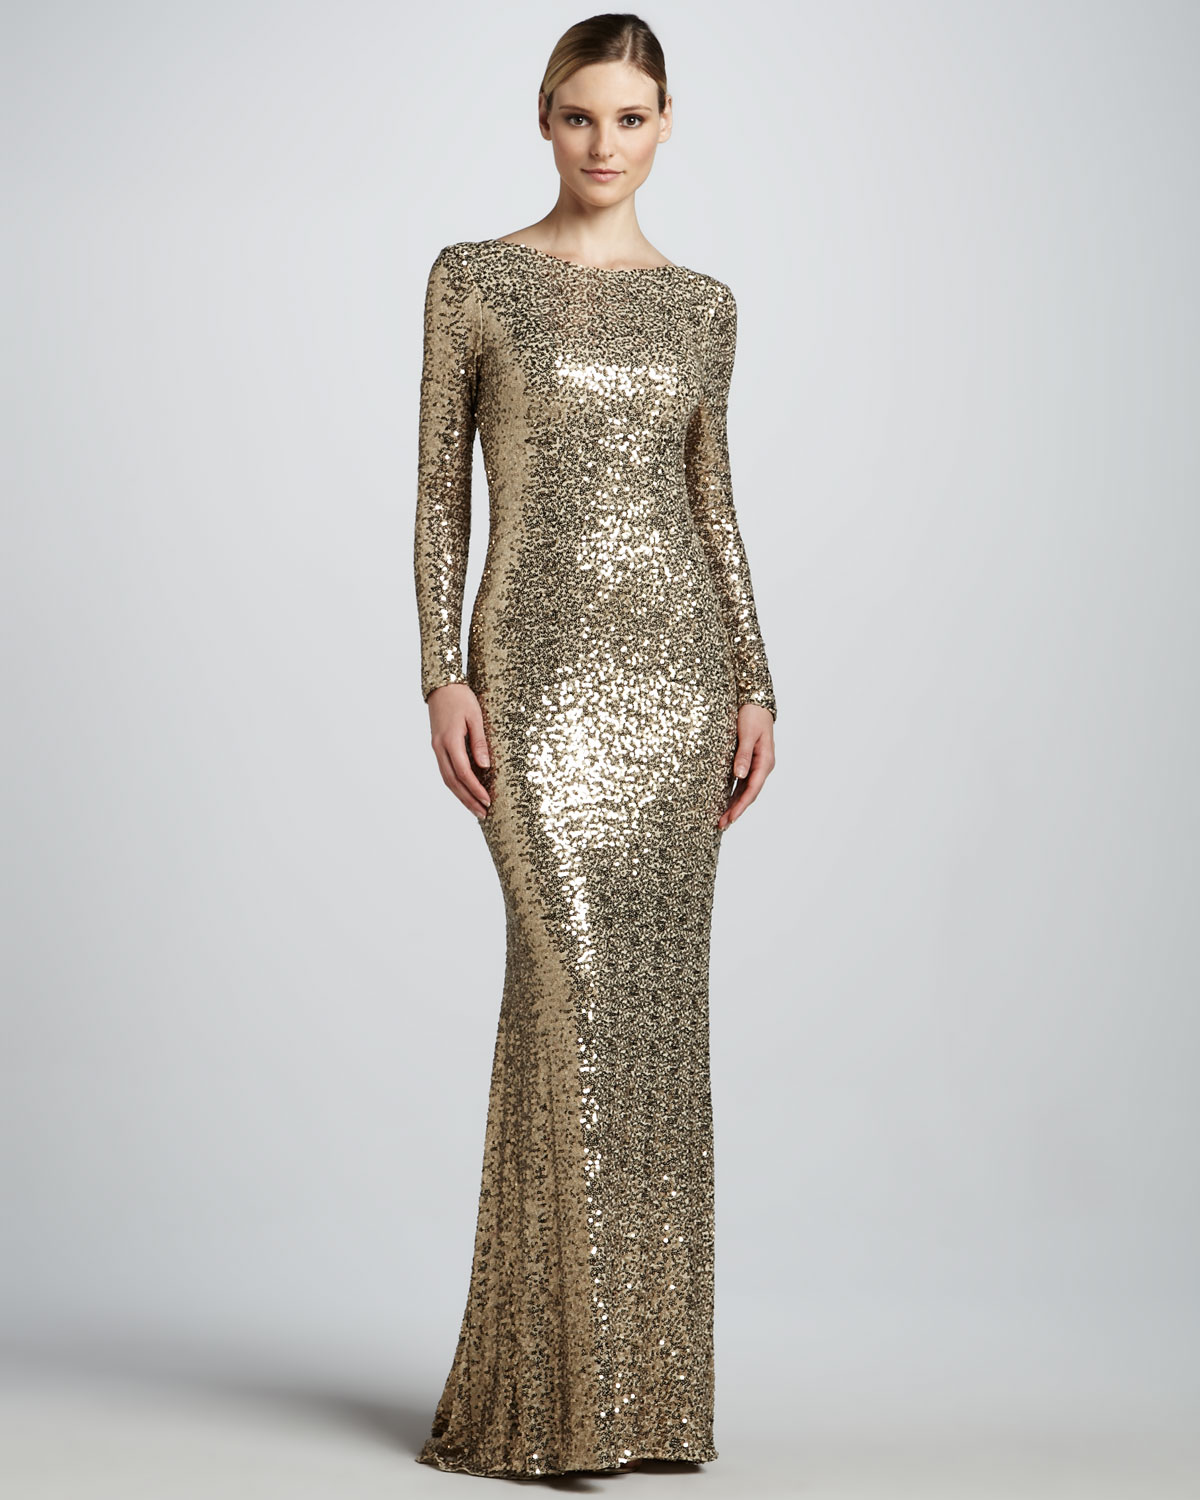 680a83354b Lyst - Badgley Mischka Sequined Gown with Cowl Back in Metallic